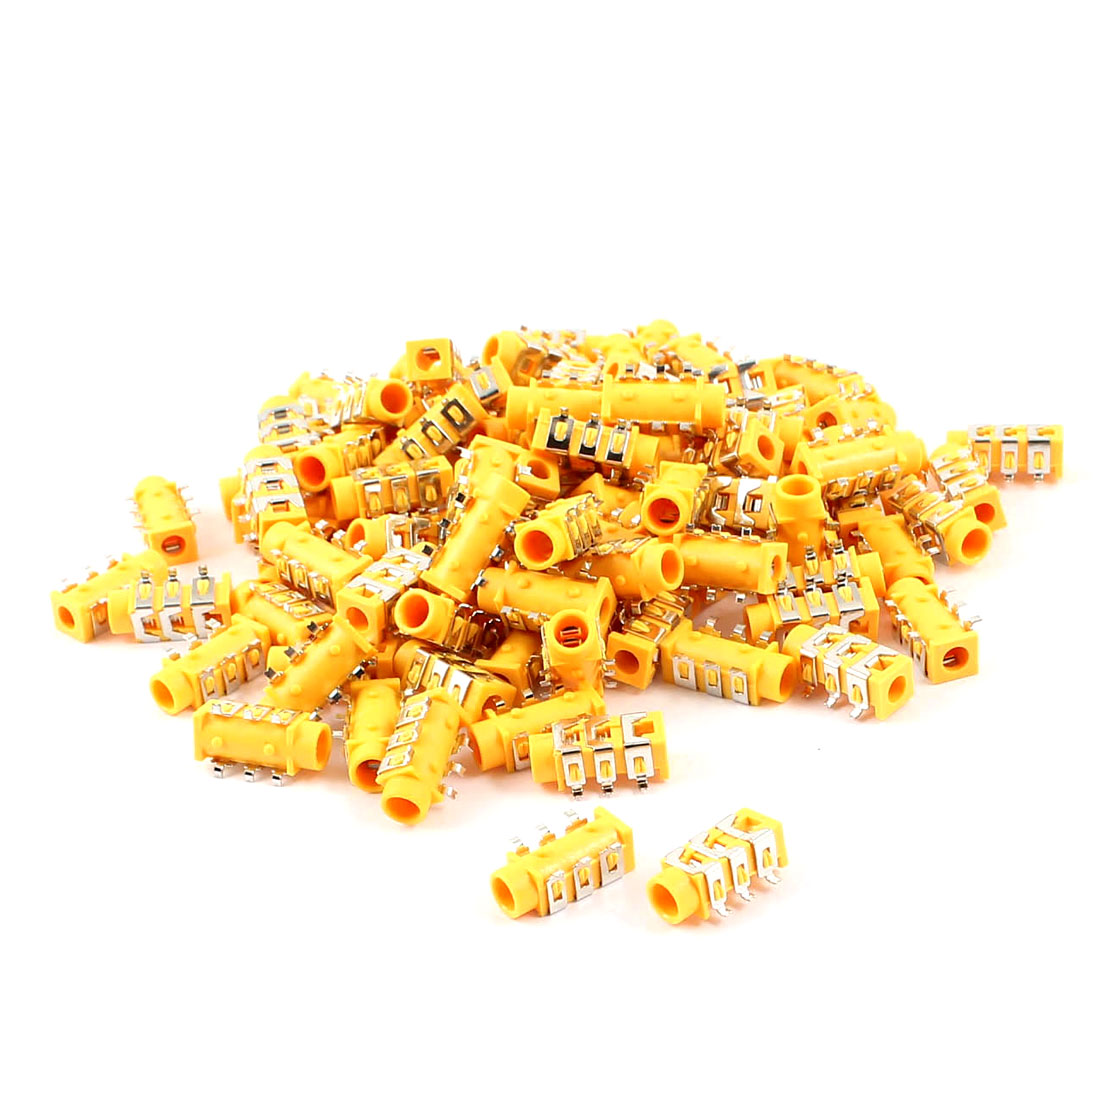 100 Pcs Orange MP3 Earphone Headset 6-Pin PCB 3.5mm Female Jack Socket